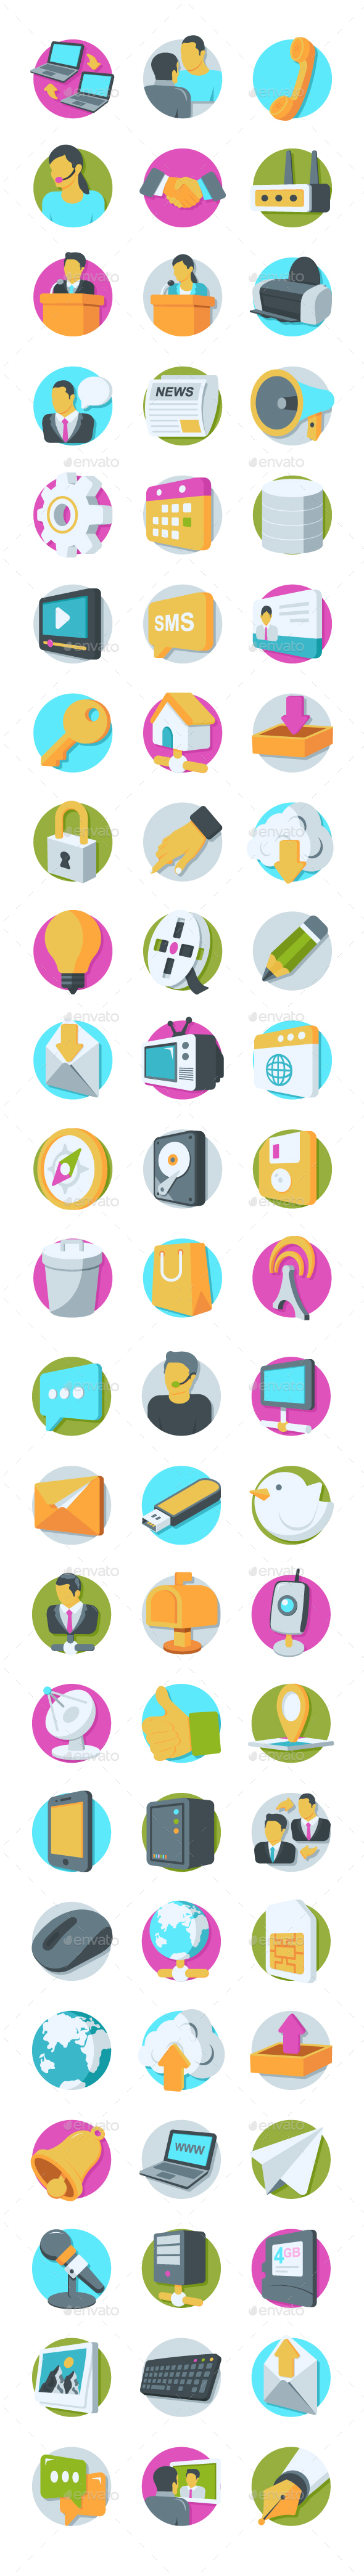 GraphicRiver 69 Network and Communication Icons 20749898